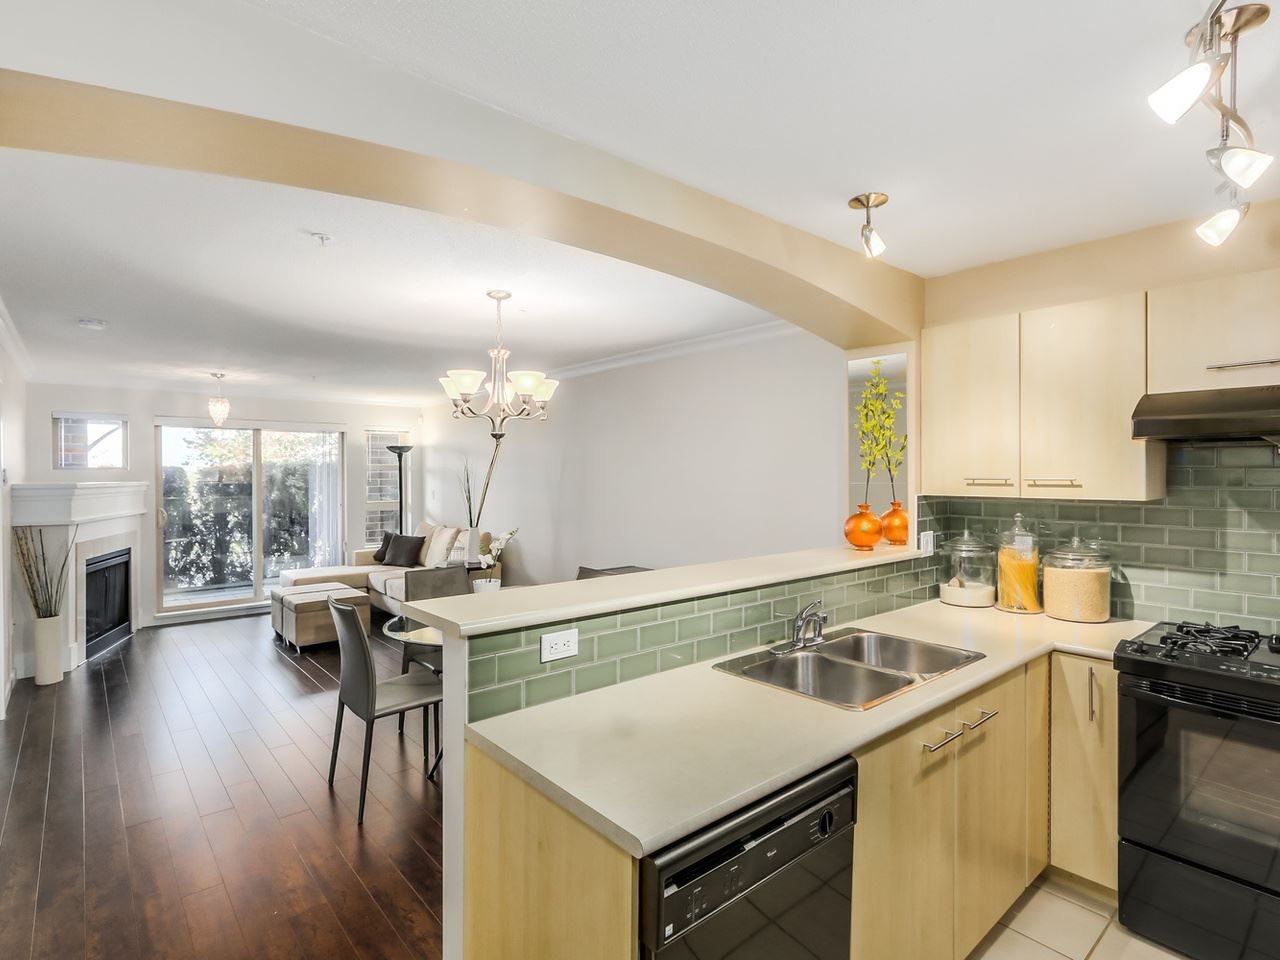 """Main Photo: 1116 5115 GARDEN CITY Road in Richmond: Brighouse Condo for sale in """"LION'S PARK by POLYGON"""" : MLS®# R2013152"""